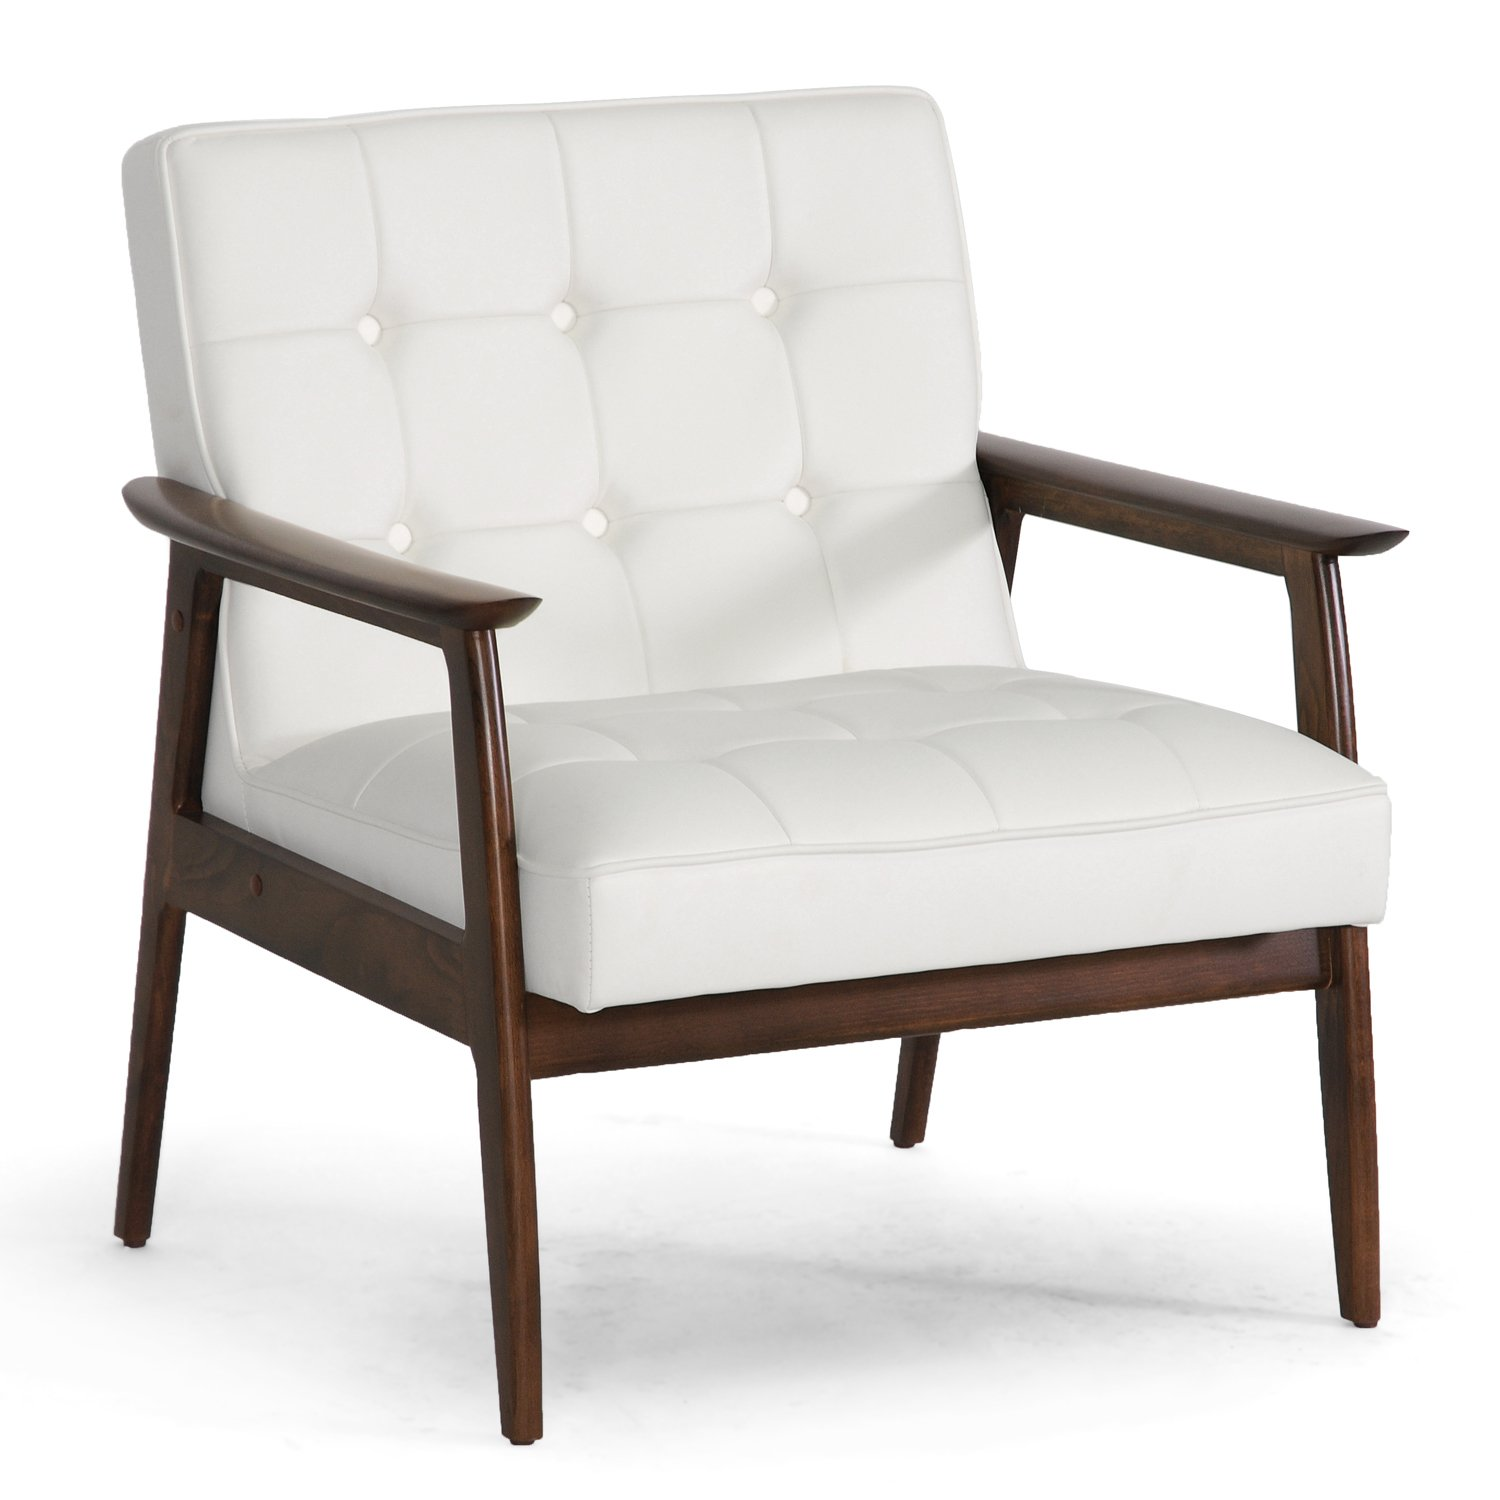 Amazon.com: Baxton Studio Stratham Mid Century Modern Club Chair, White:  Kitchen U0026 Dining